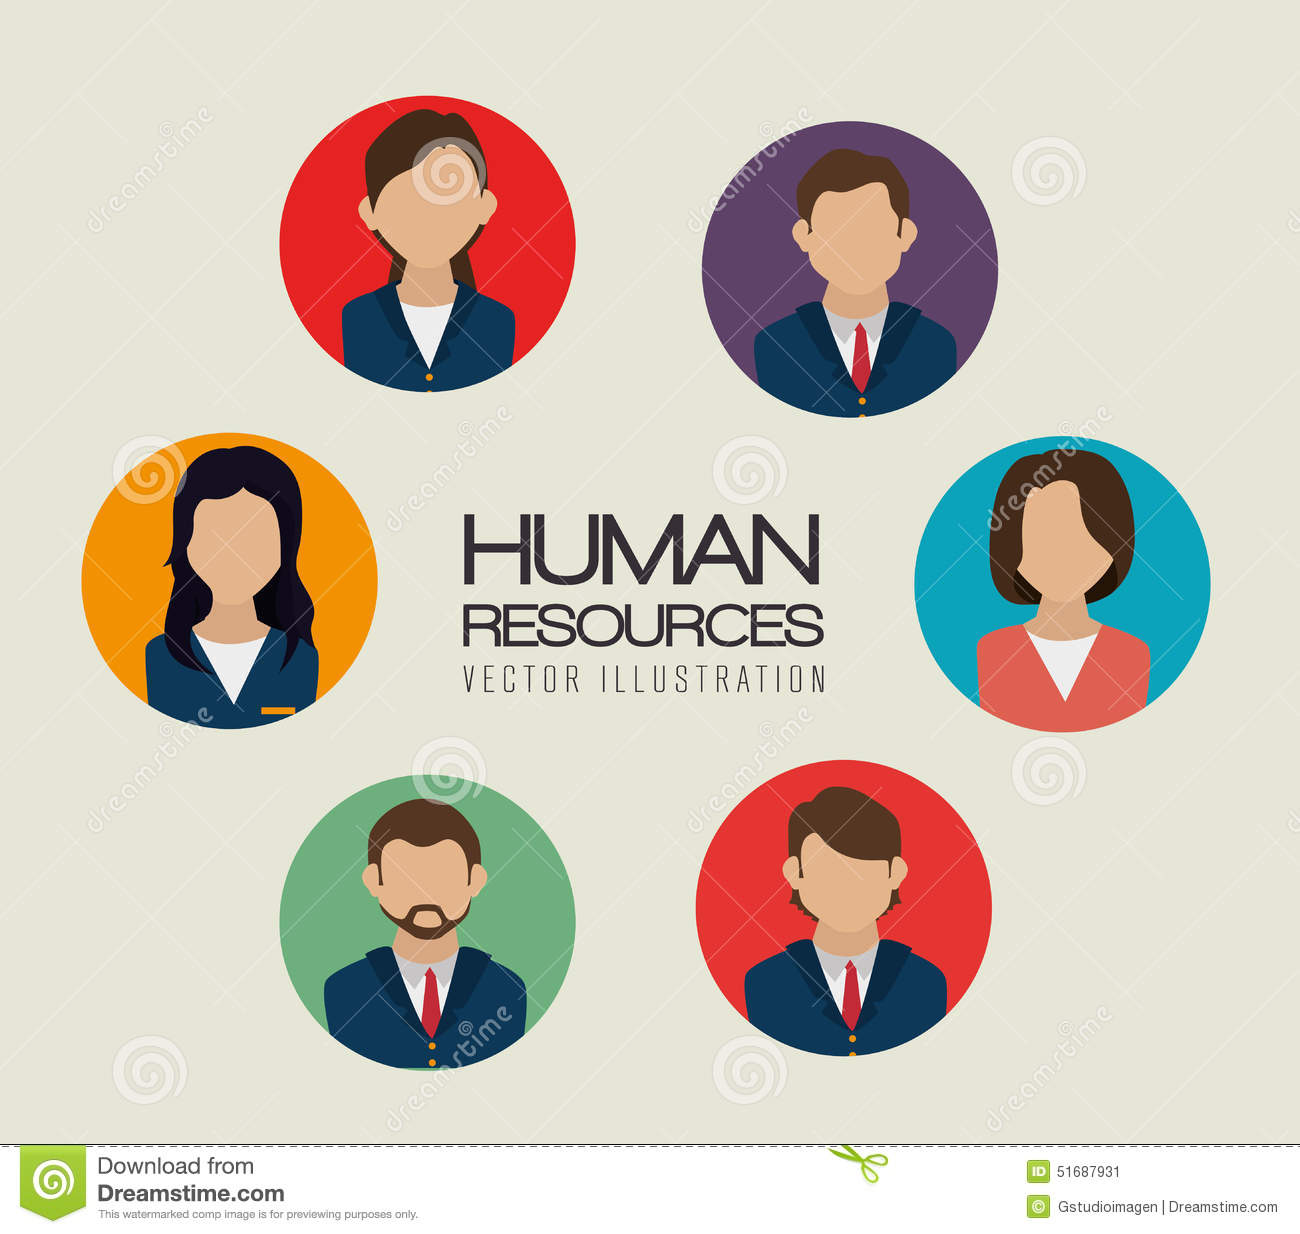 Human Resources: Human Resources Vector